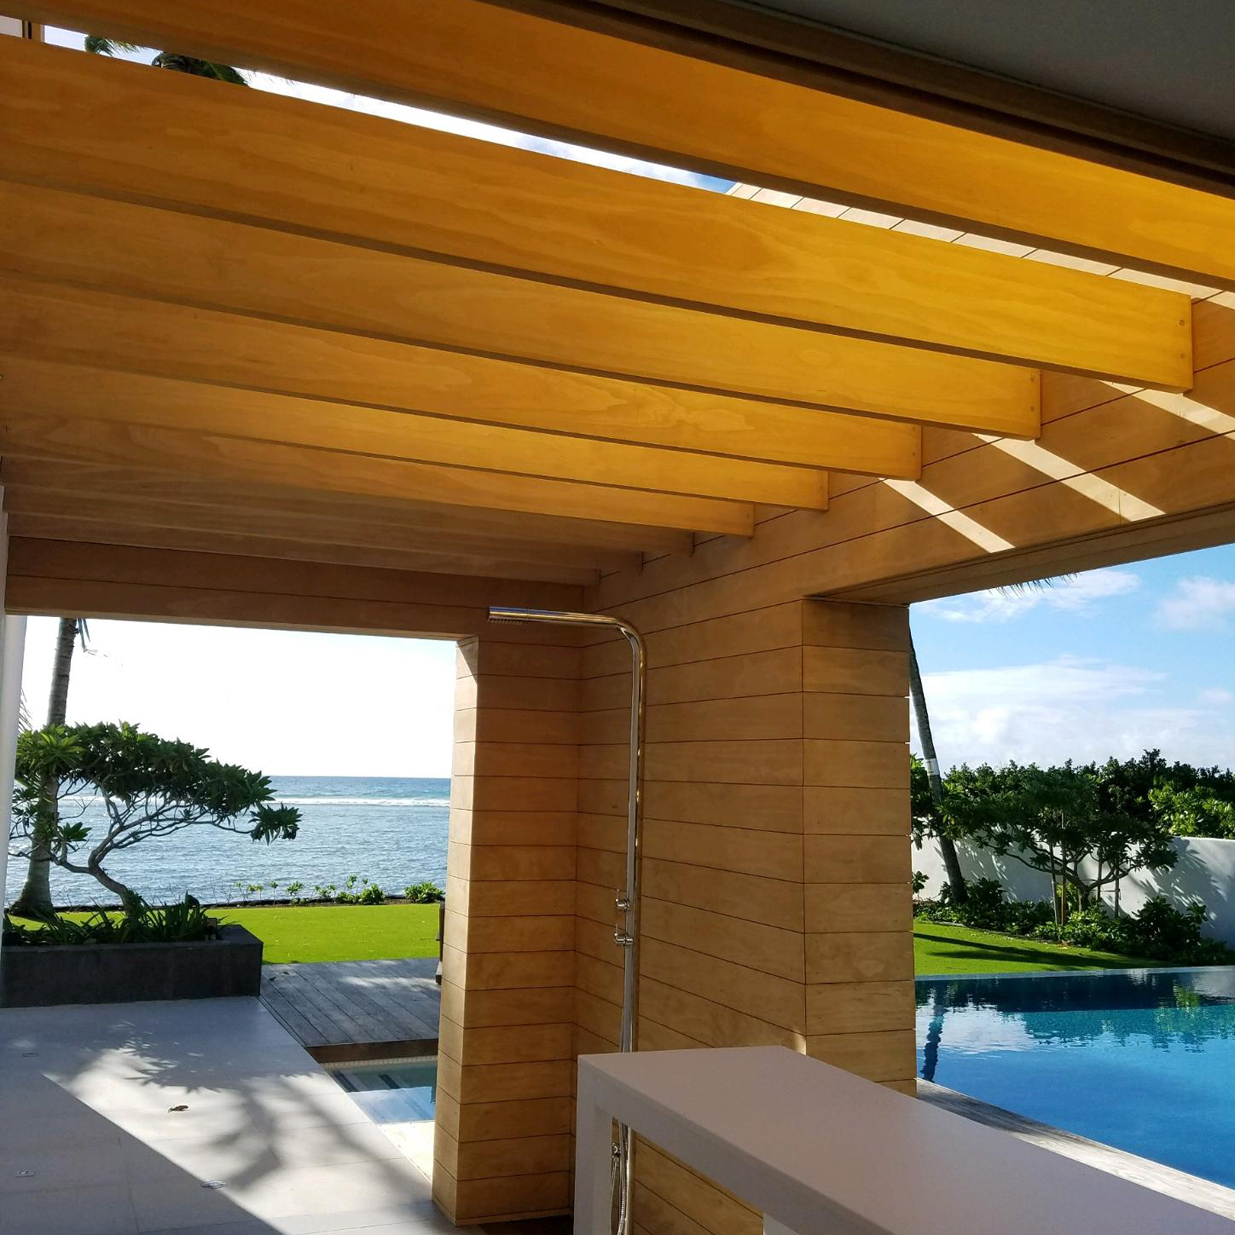 Accoya stands out on this mid century high end home